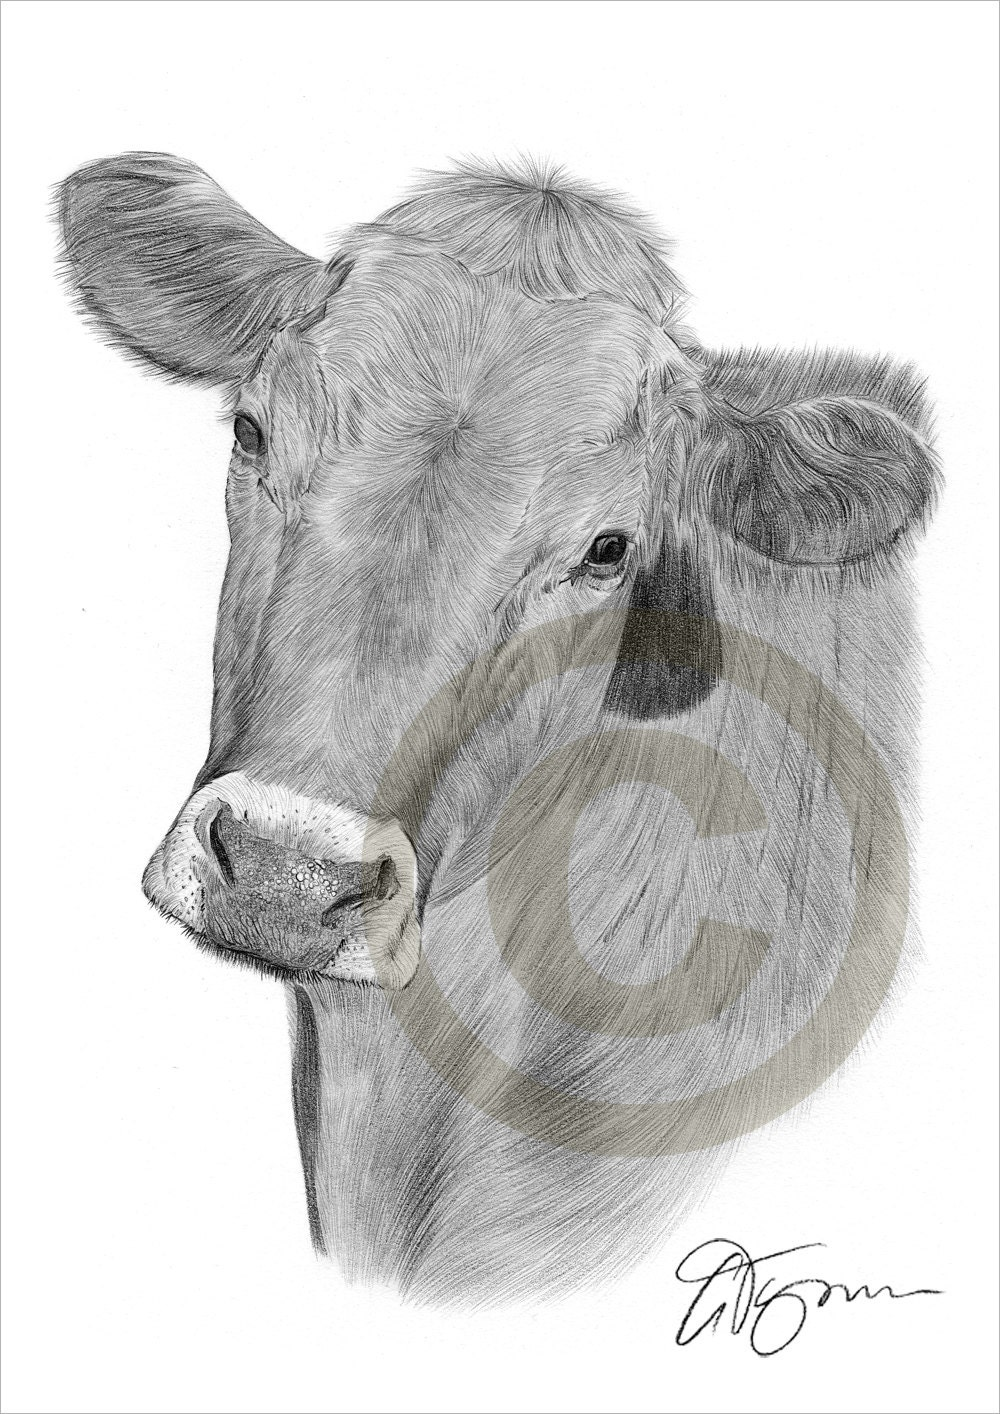 Cow pencil drawing print - animal art - artwork signed by artist Gary Tymon  - Ltd Ed 50 prints only - 2 sizes - watercolour pencil portrait